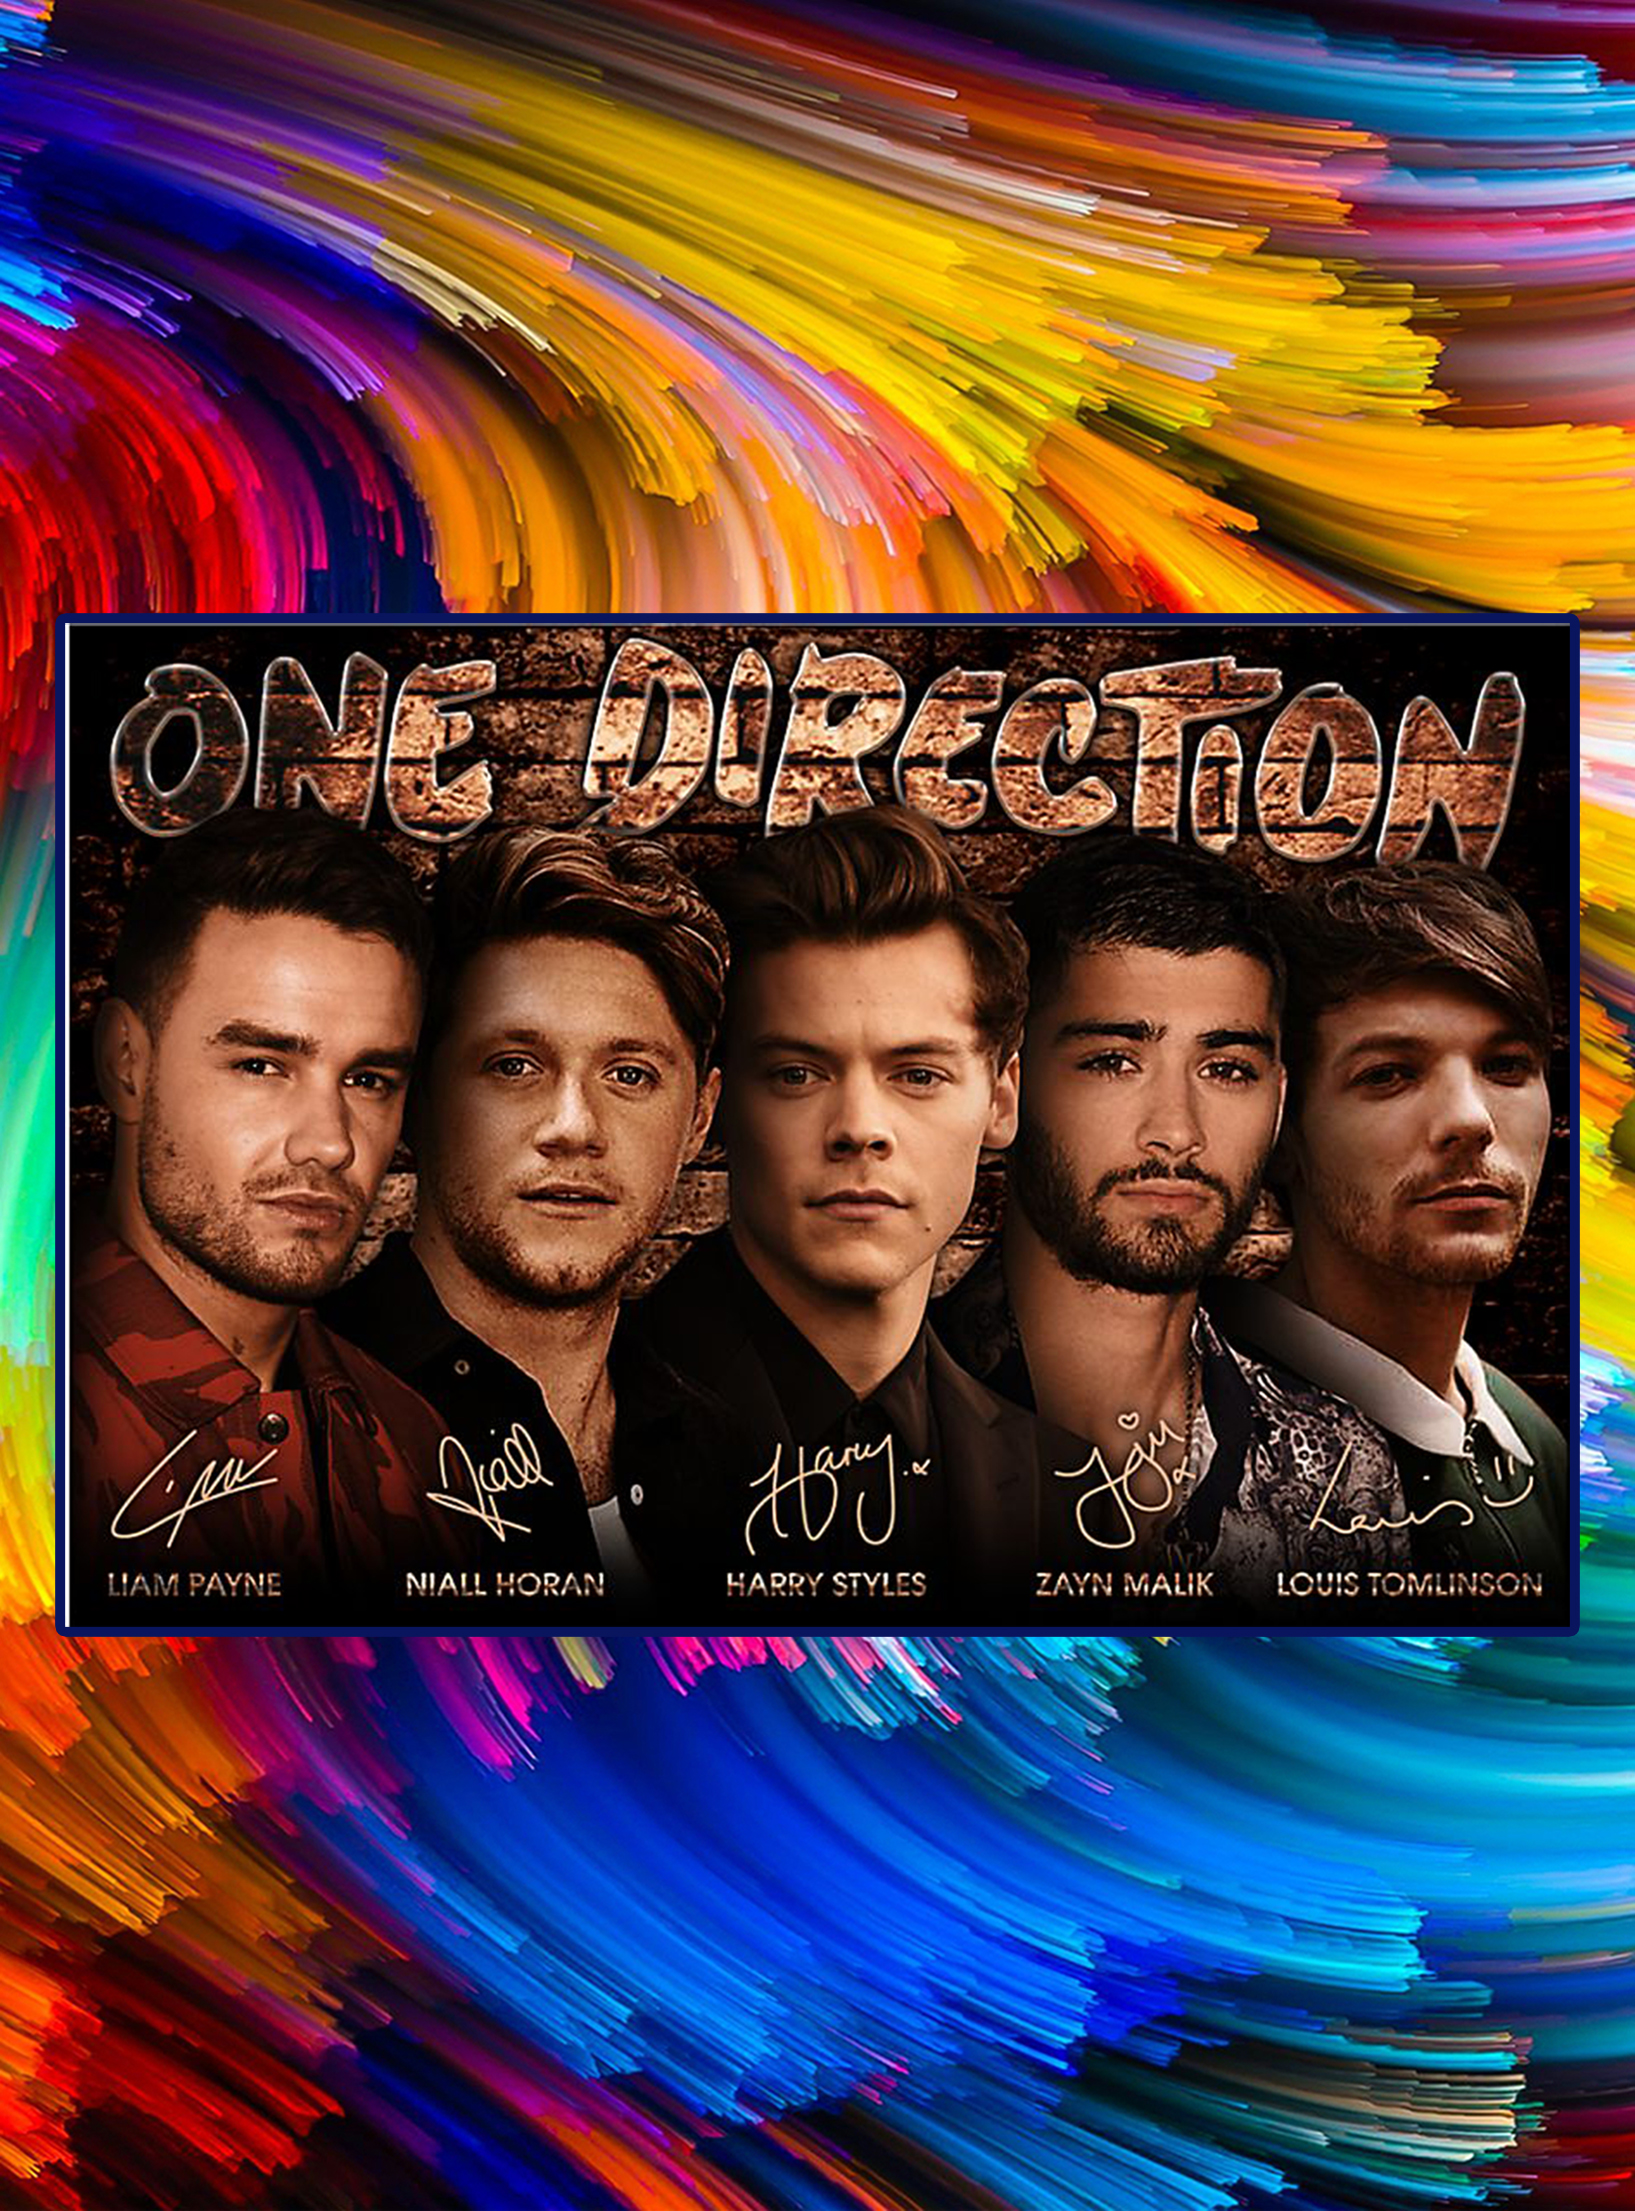 One direction liam payne niall horan harry styles signature poster - A2